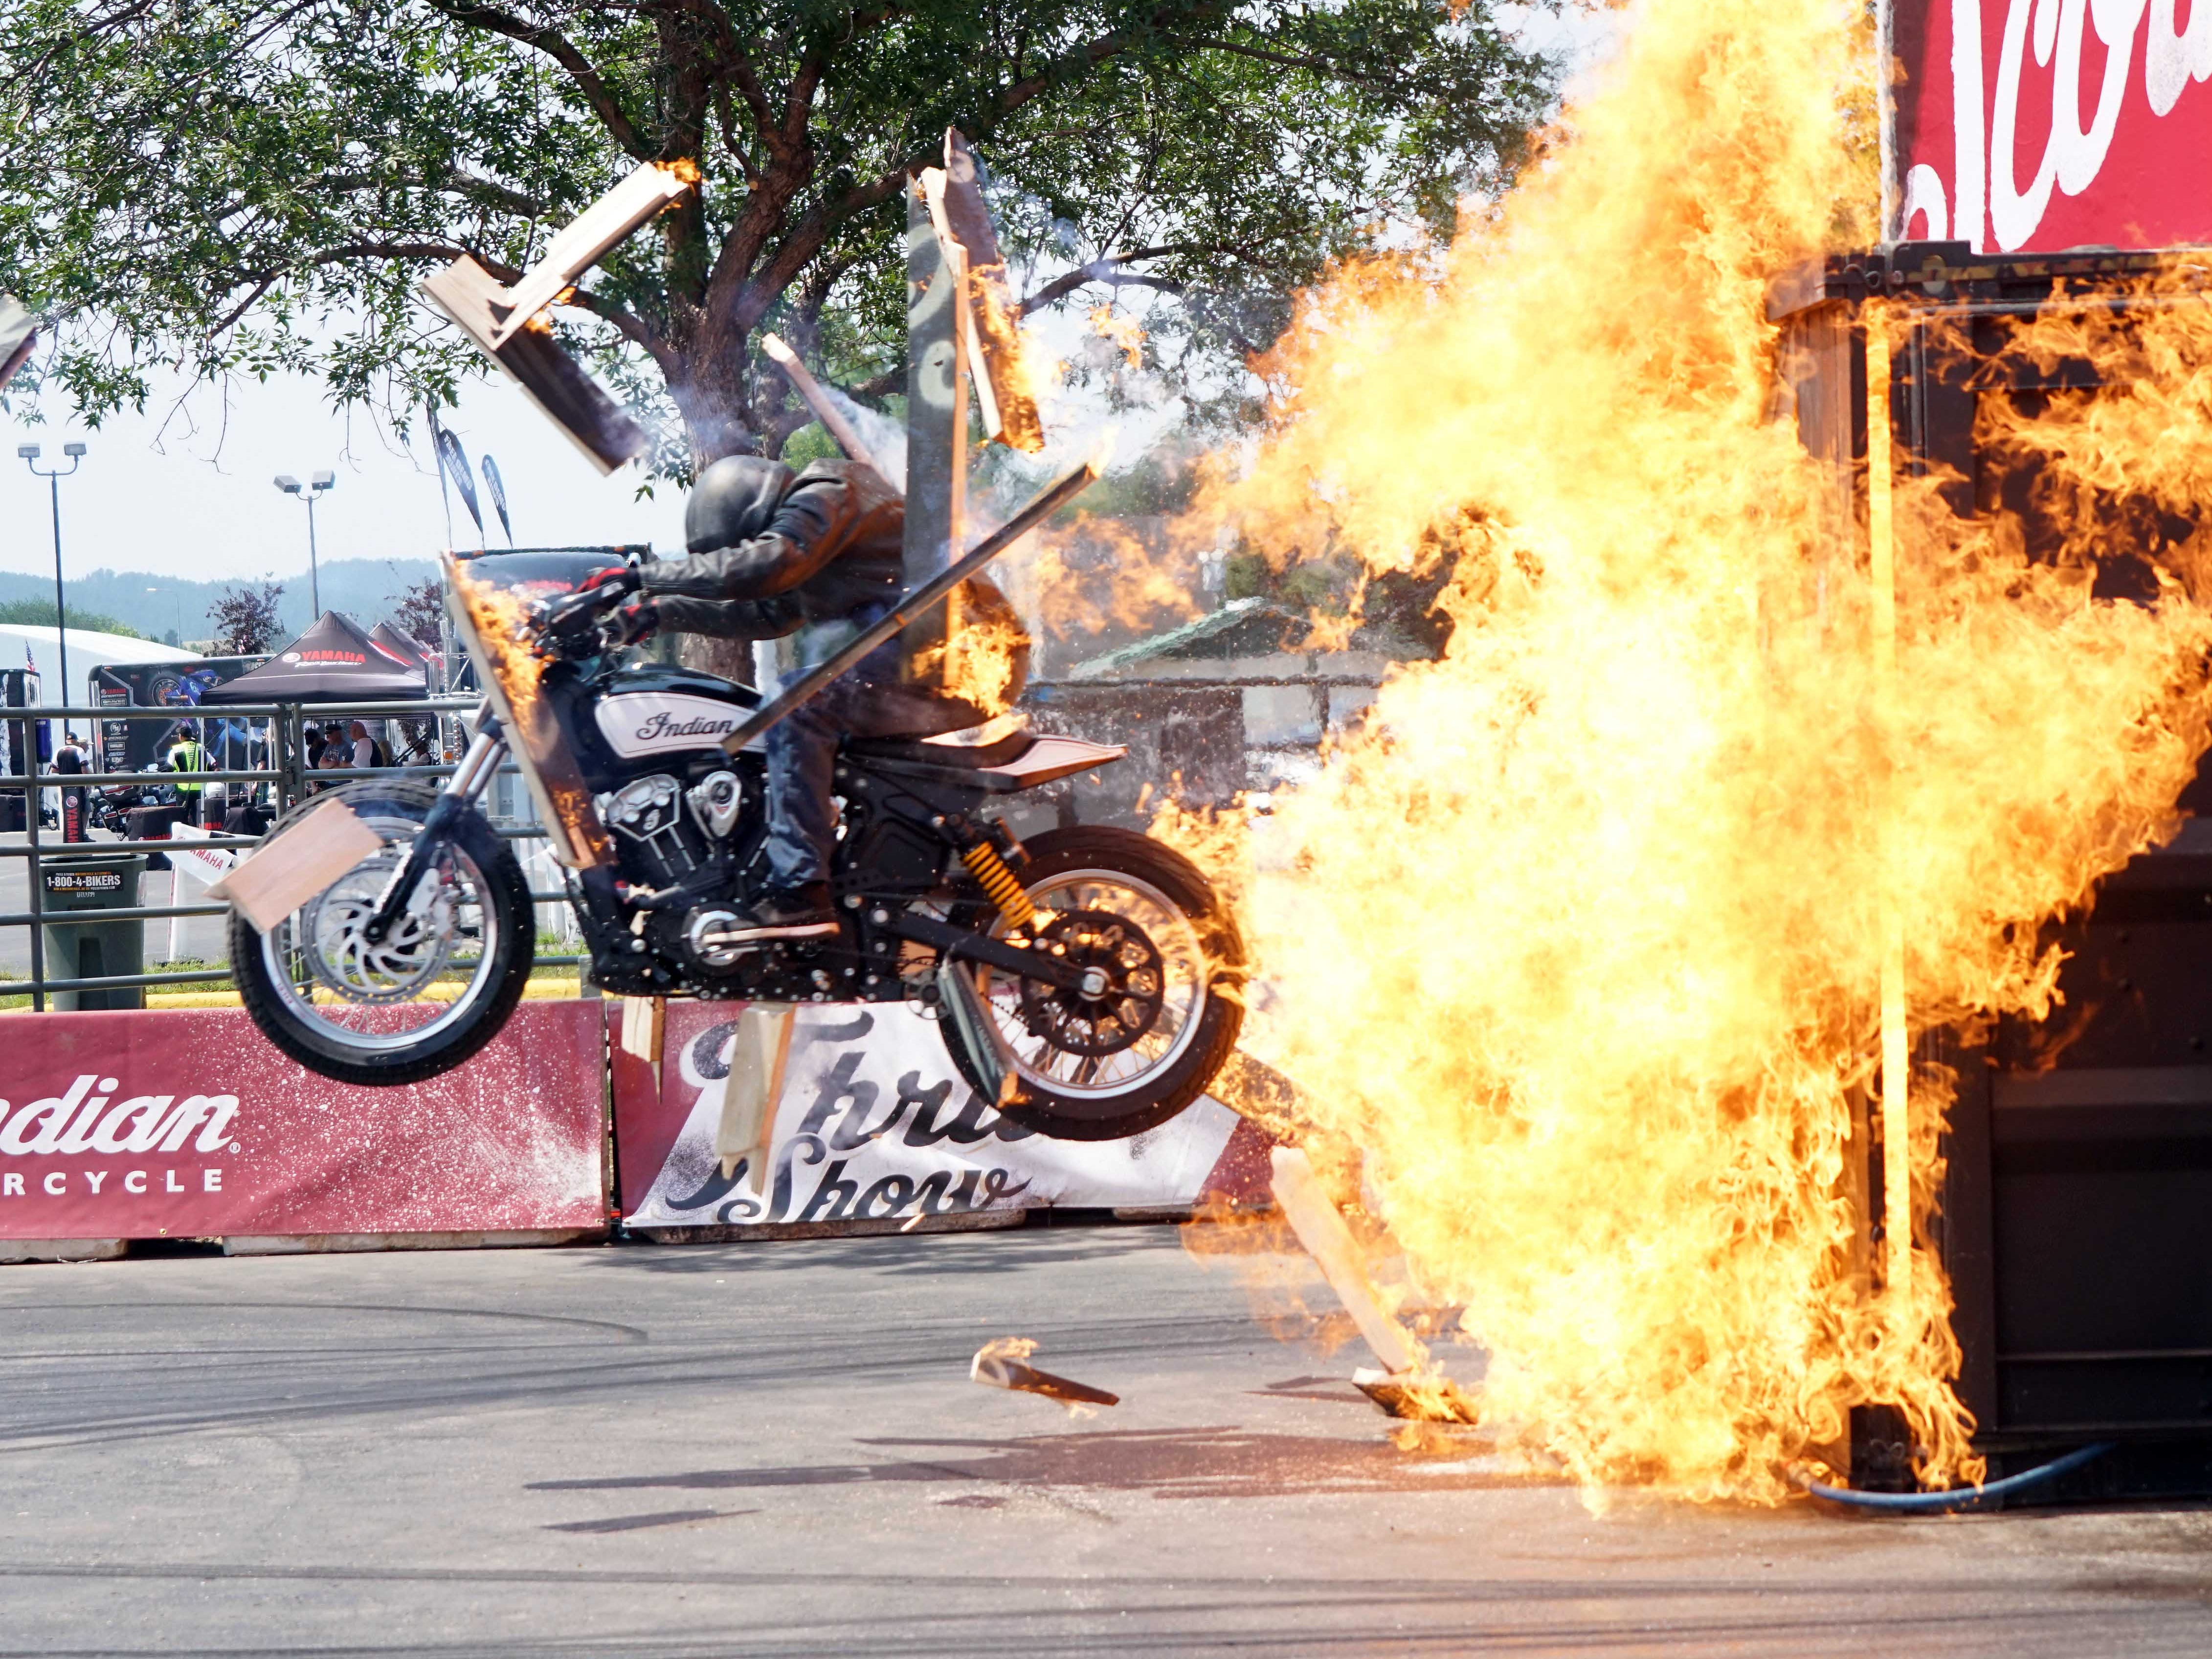 2018: A stunt rider with the Indian Motorcycle team launches off a jump during a demonstration during the  Sturgis rally.